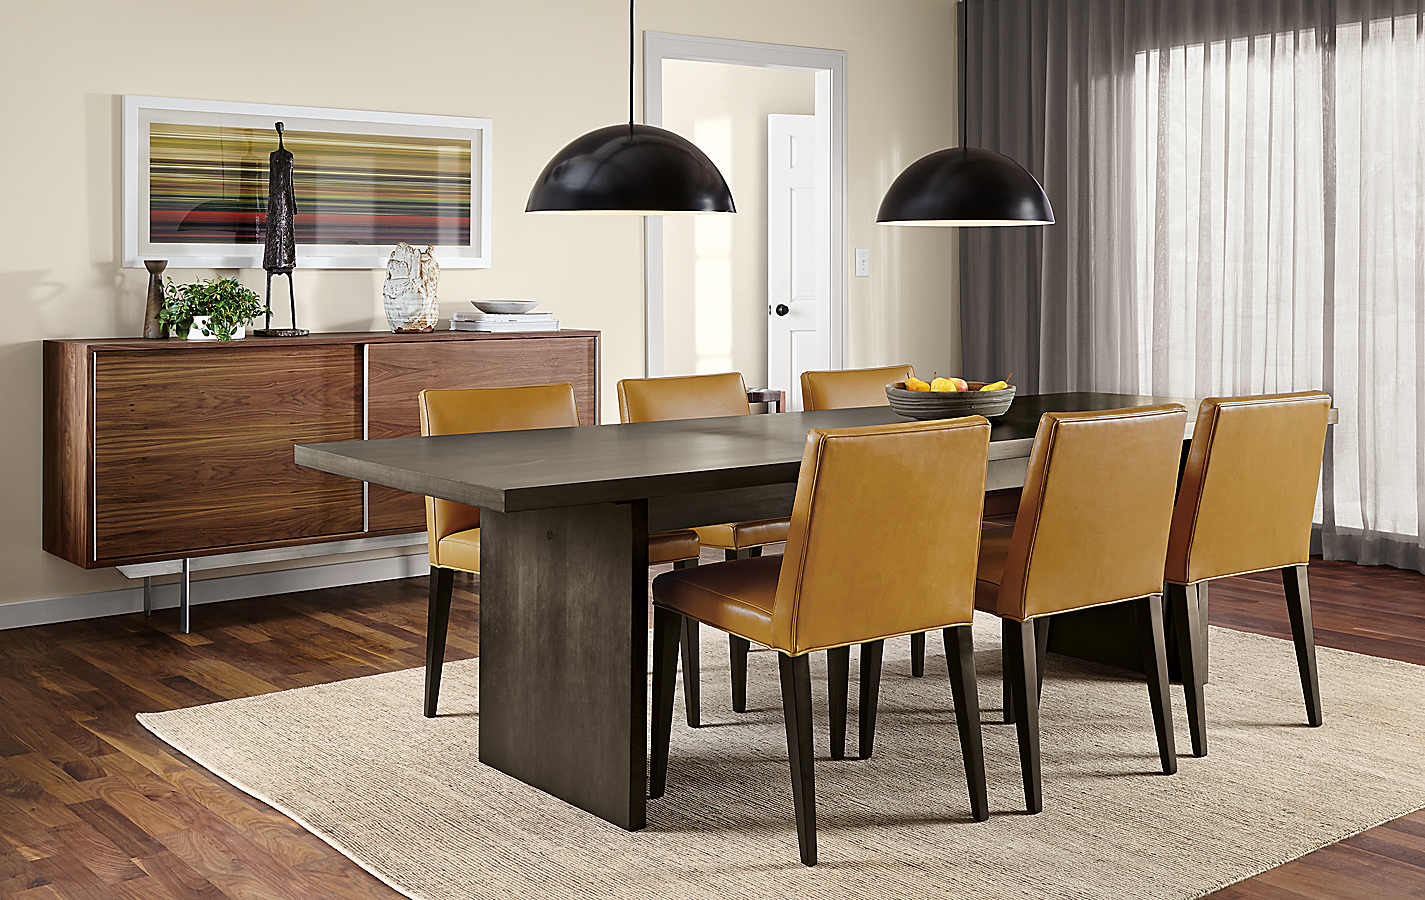 Corbett Table in Walnut and Ava Chairs